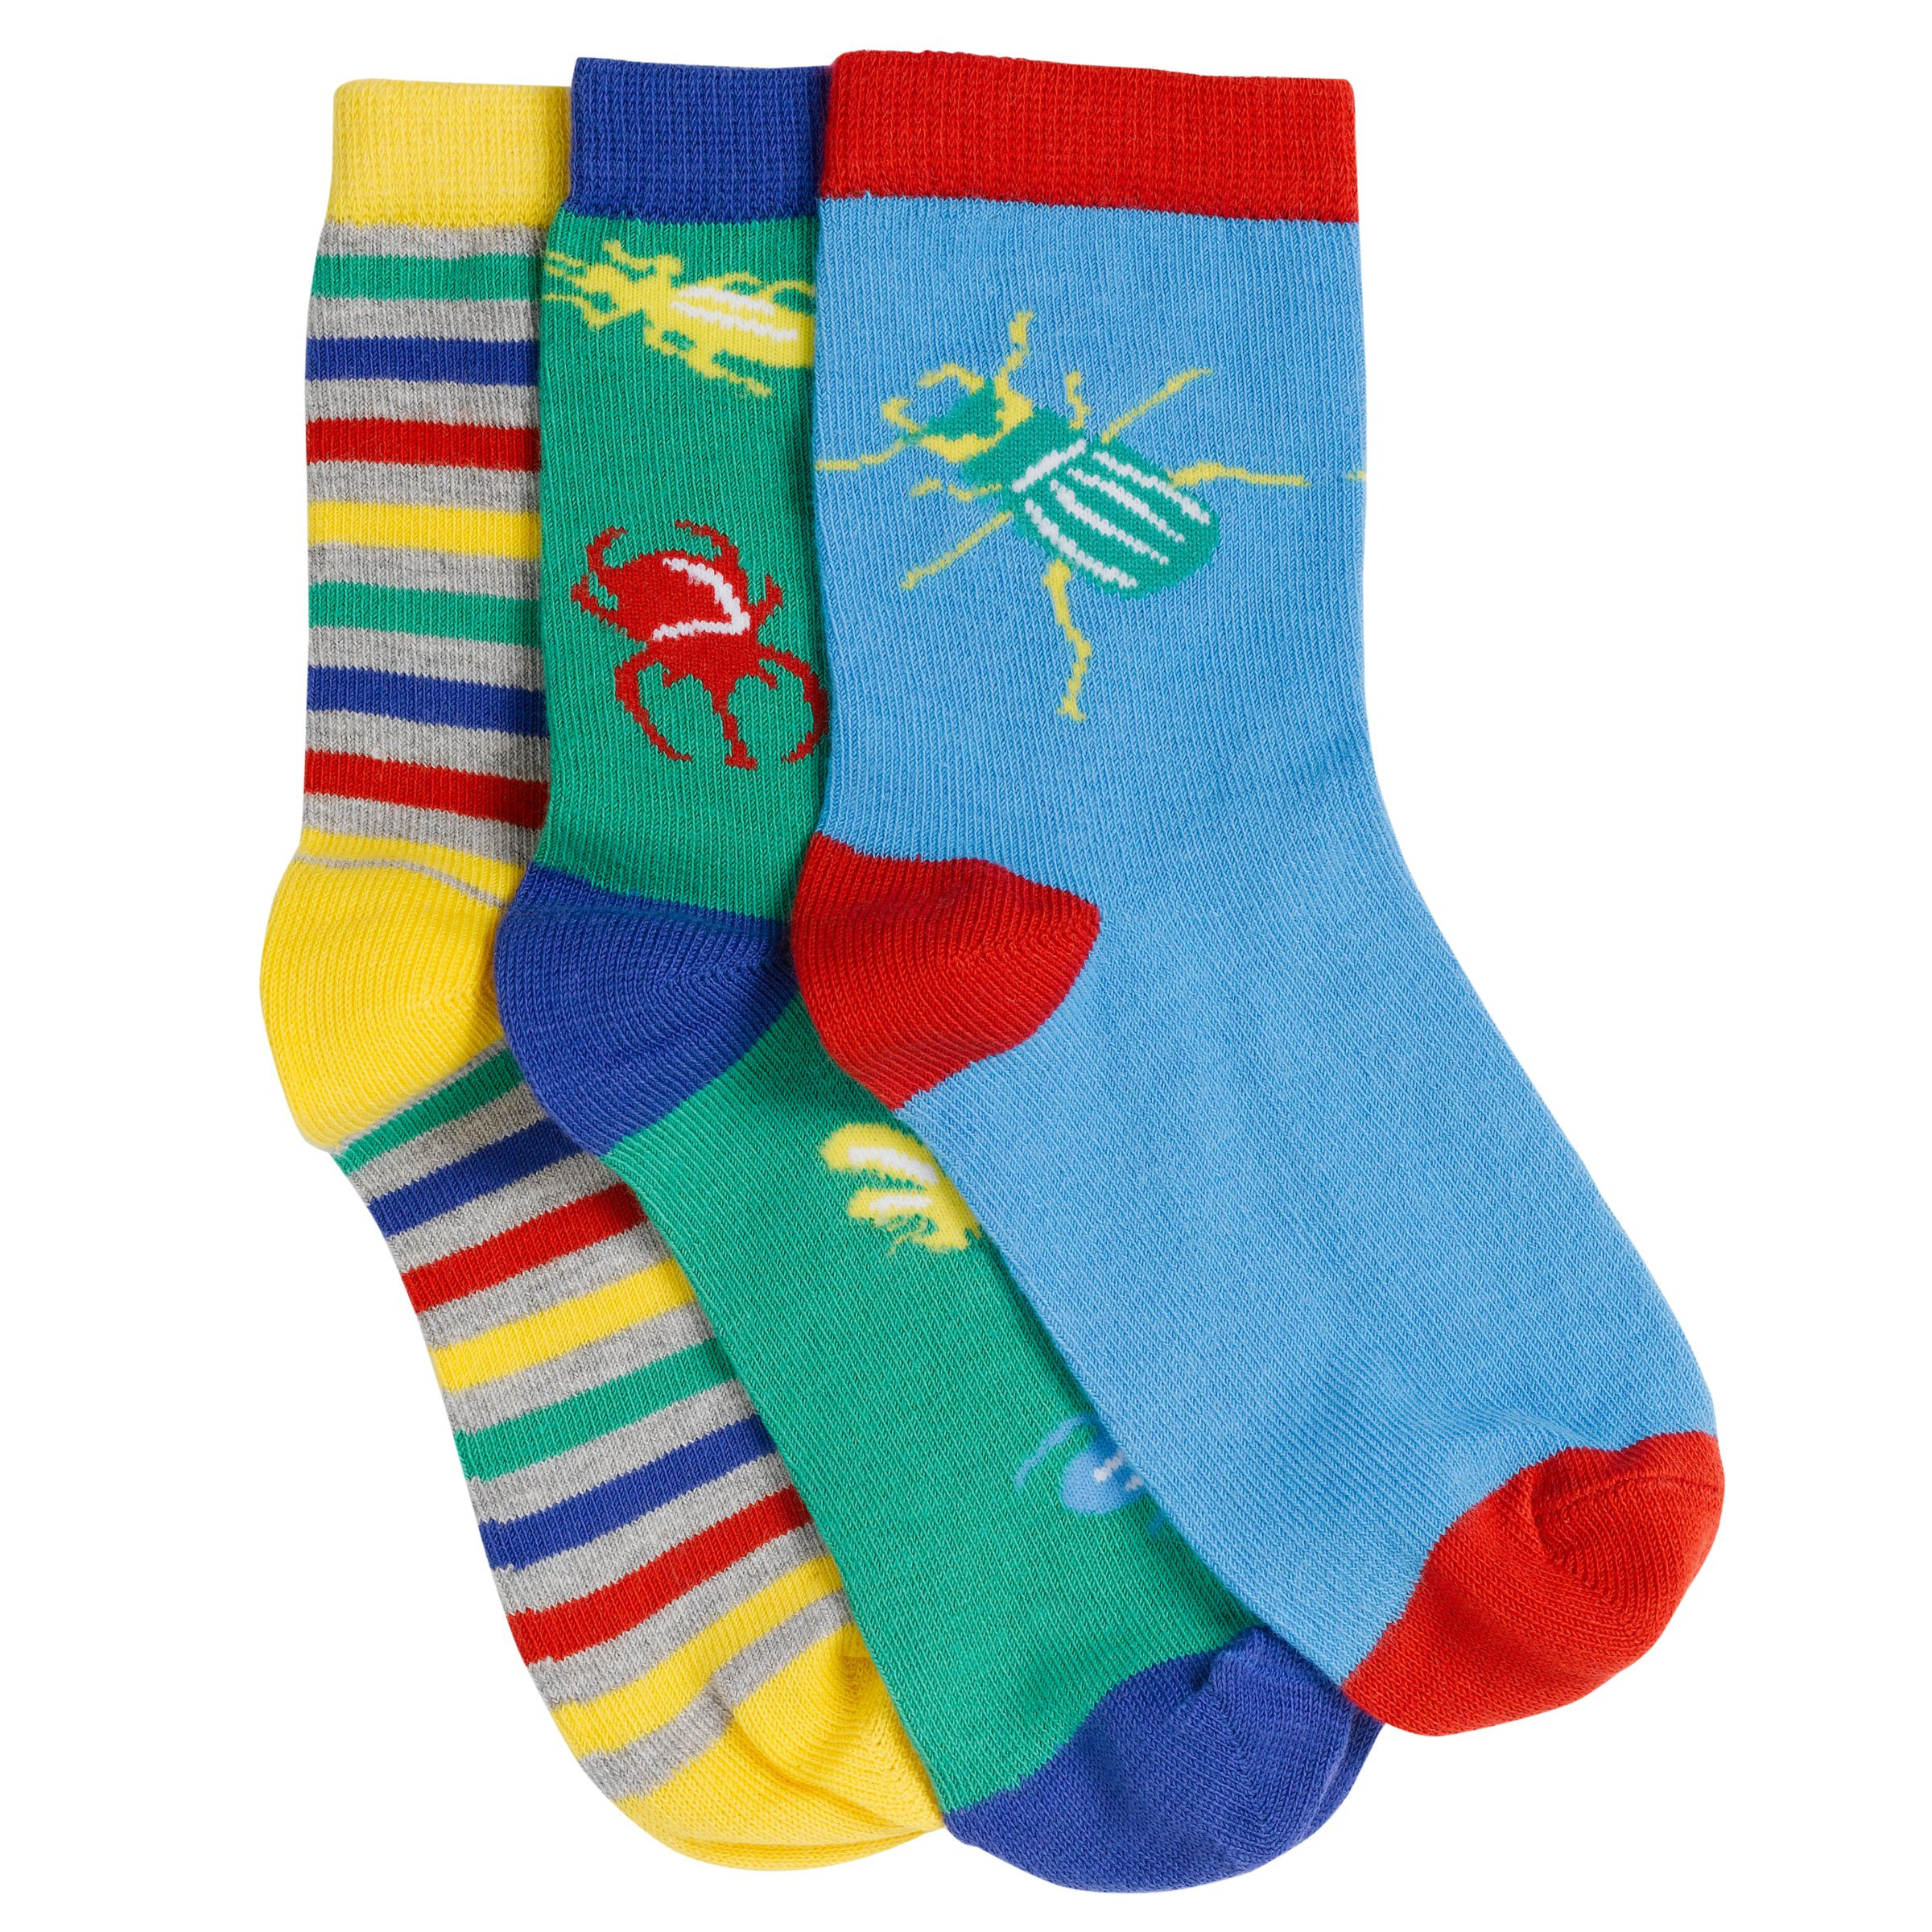 John Lewis Boy Bug Socks, Pack of 3, Multi